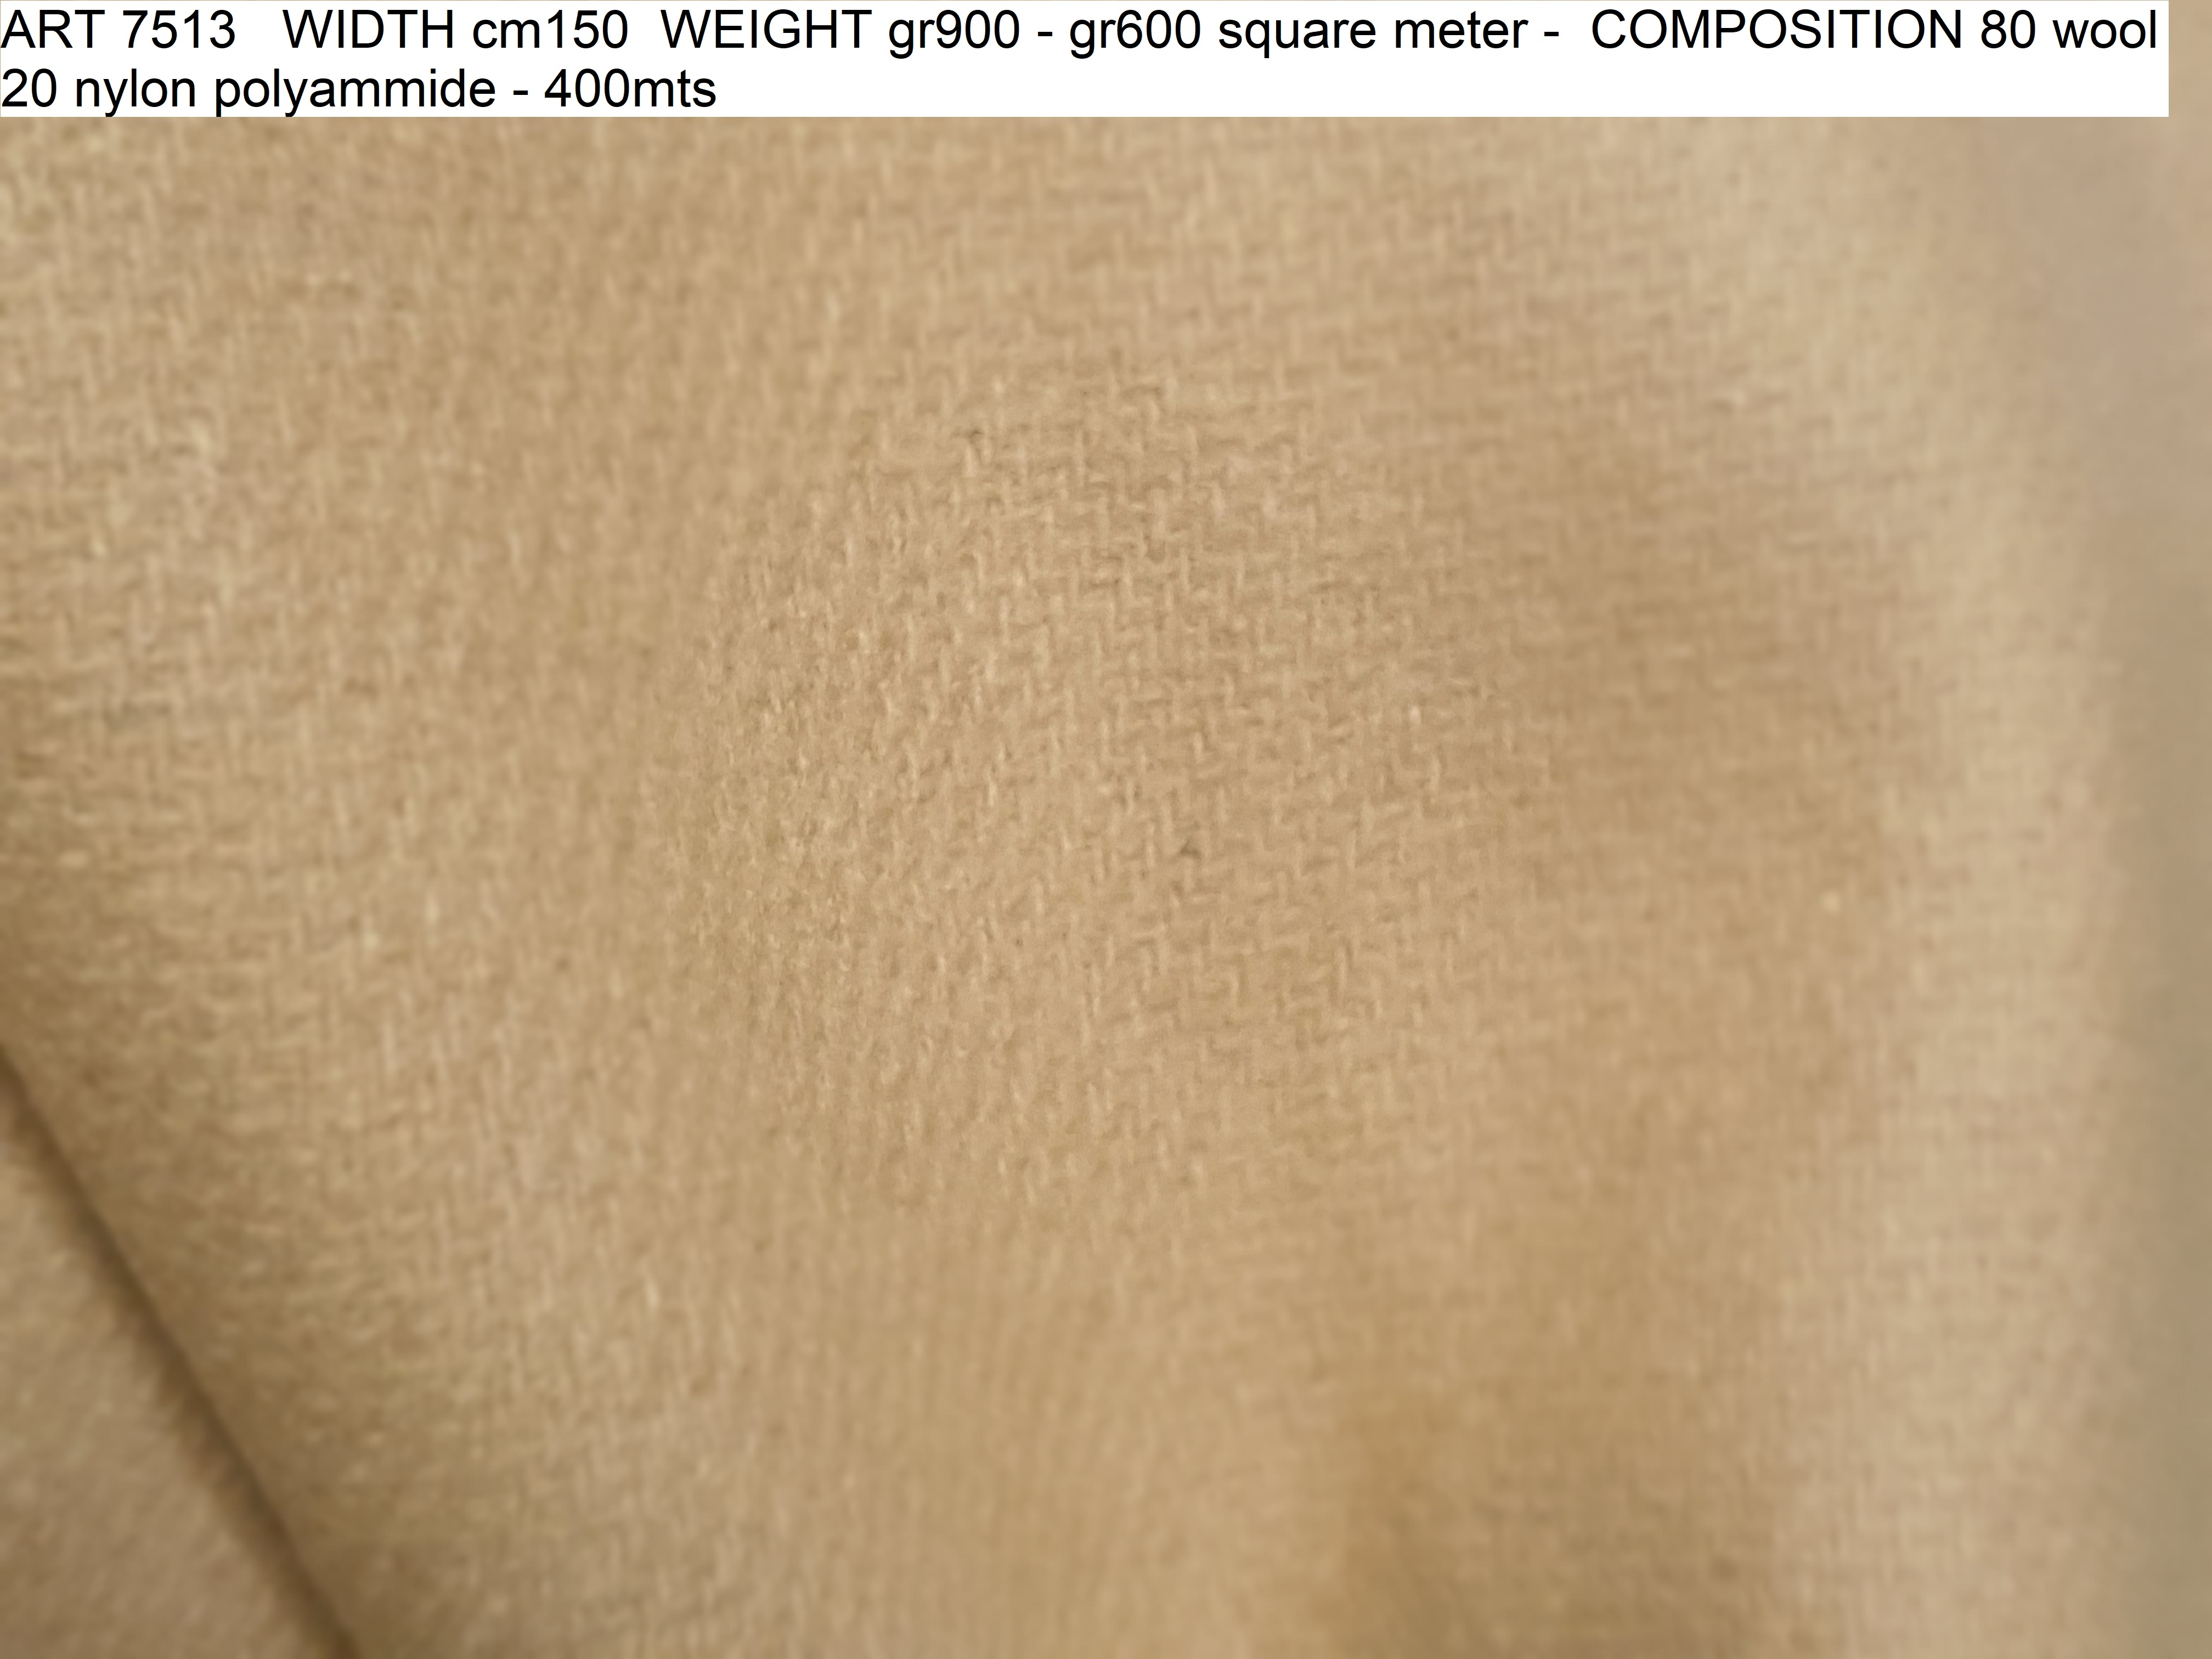 ART 7513 WIDTH cm150 WEIGHT gr900 - gr600 square meter - COMPOSITION 80 wool 20 nylon polyammide - 400mts